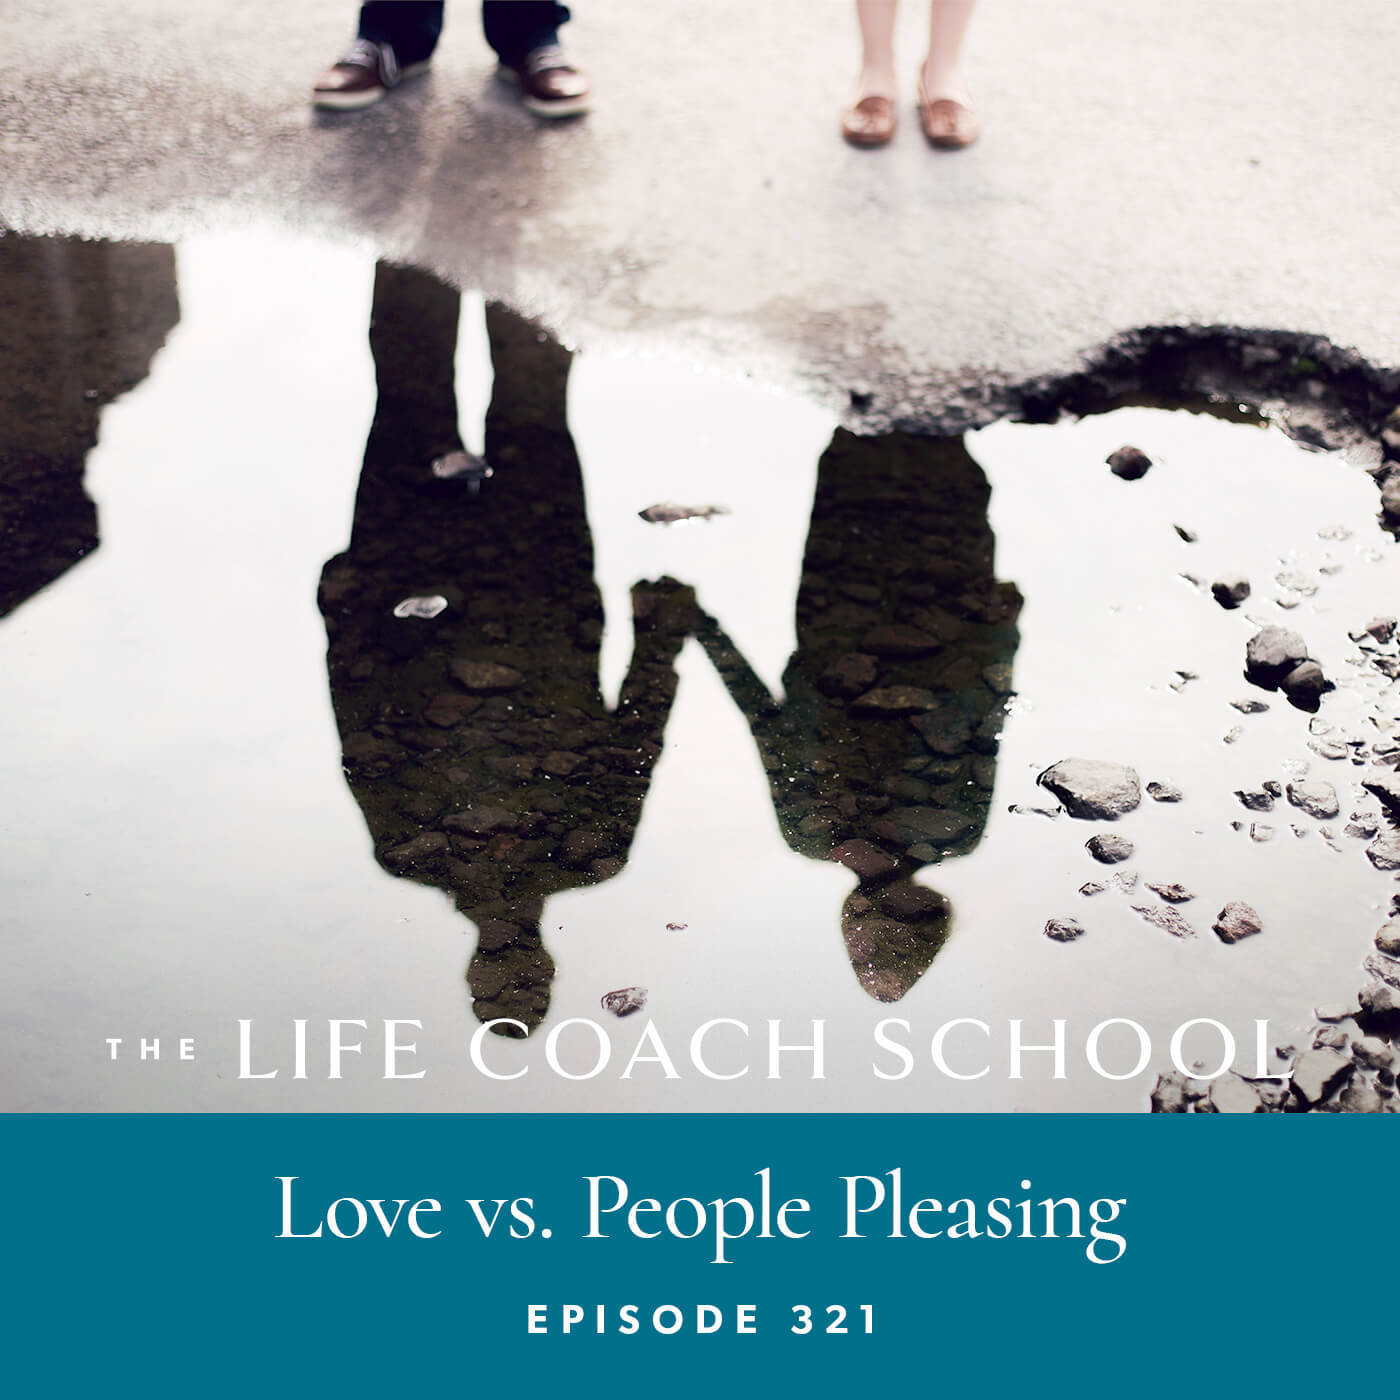 The Life Coach School Podcast with Brooke Castillo | Episode 321 | Love vs. People Pleasing